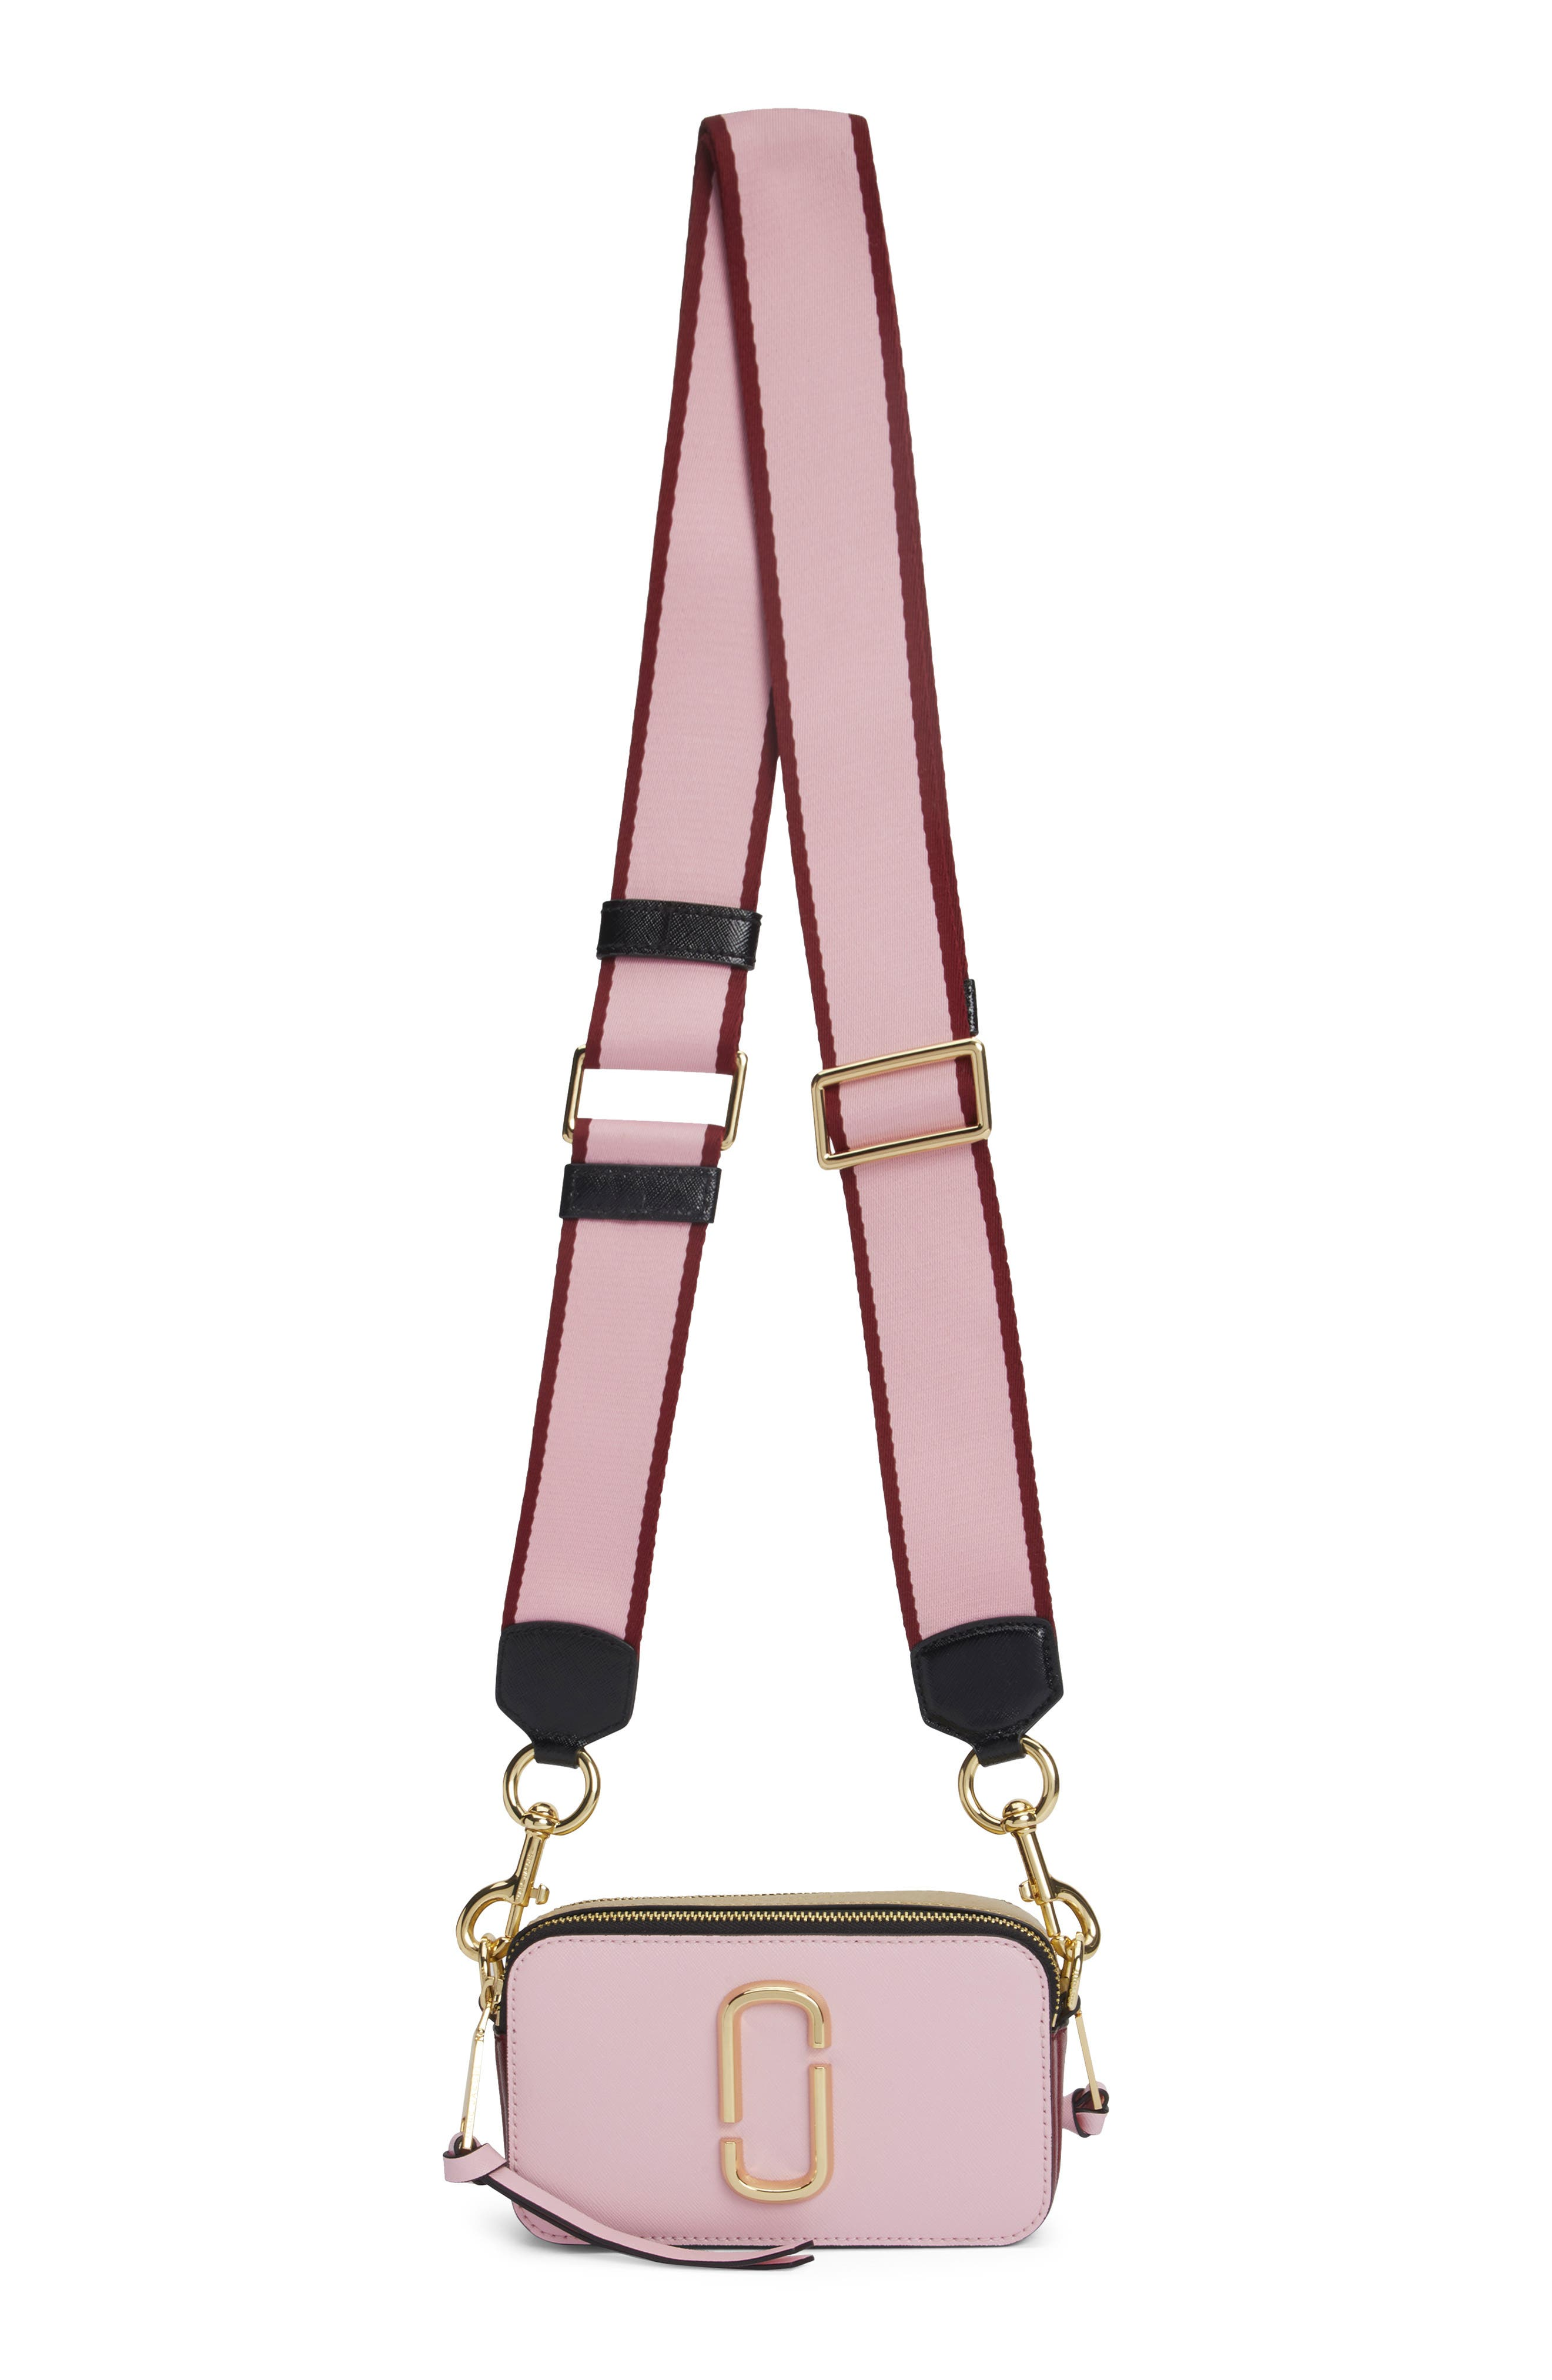 MARC JACOBS, Snapshot Crossbody Bag, Alternate thumbnail 6, color, BABY PINK/ RED